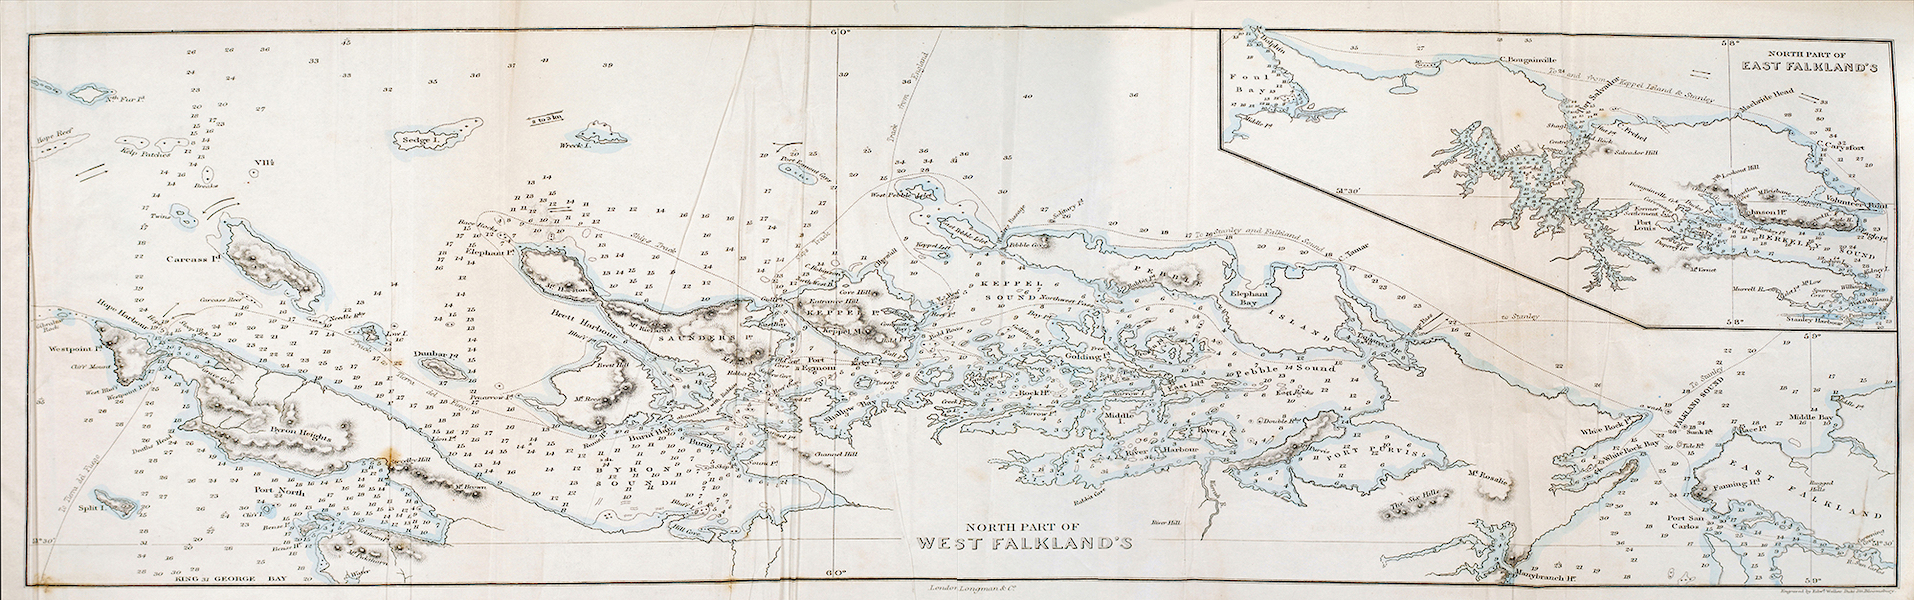 A Two Years Cruise off Tierra del Fuego Vol. 1 - North Part of West Falkland (1857)